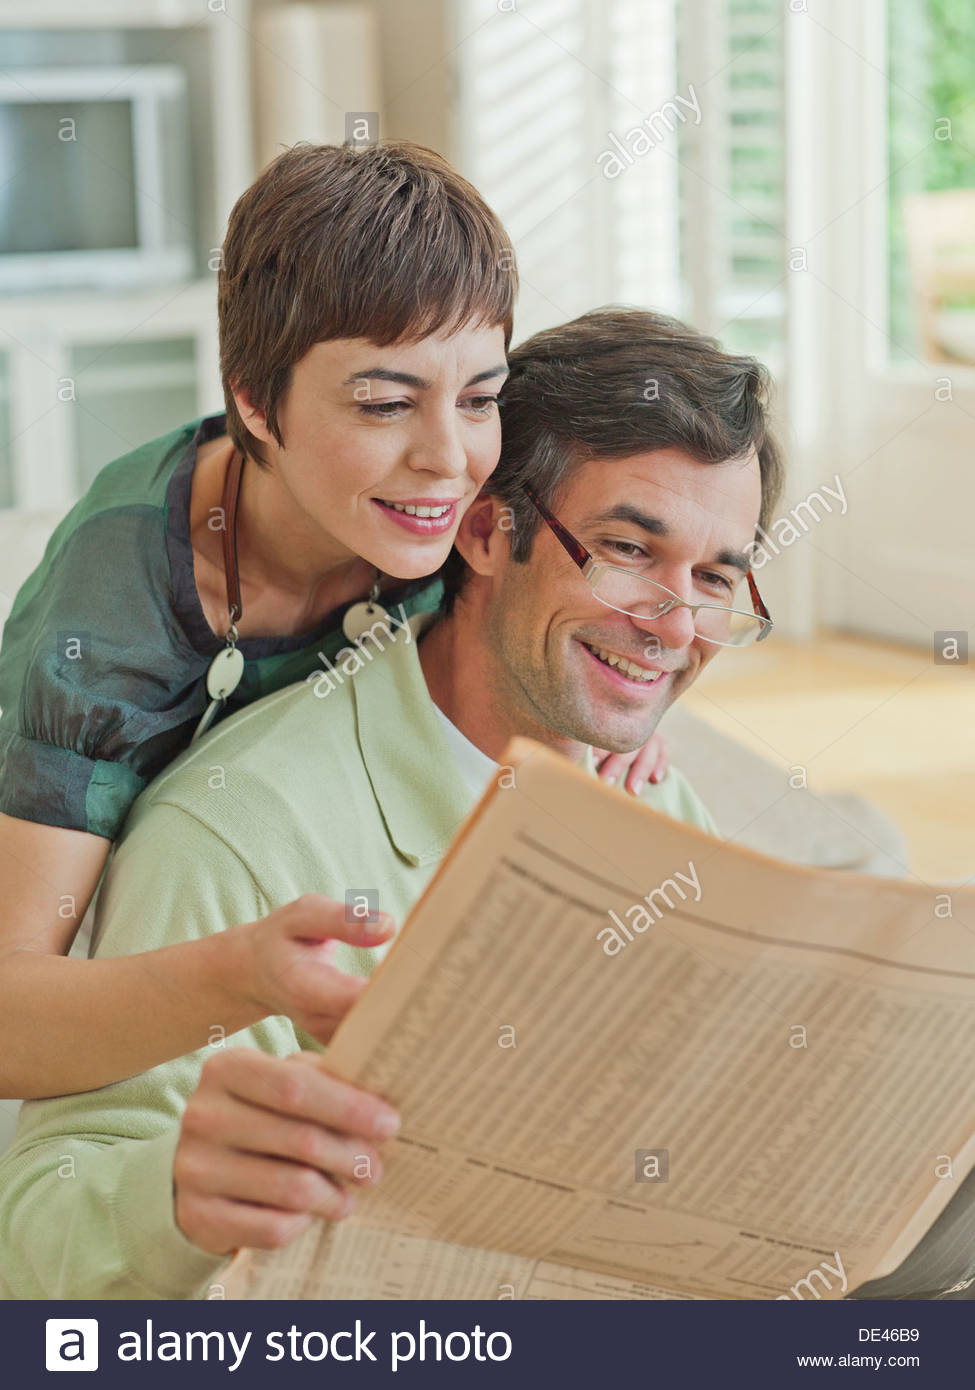 Couple reading newspaper - Stock Image